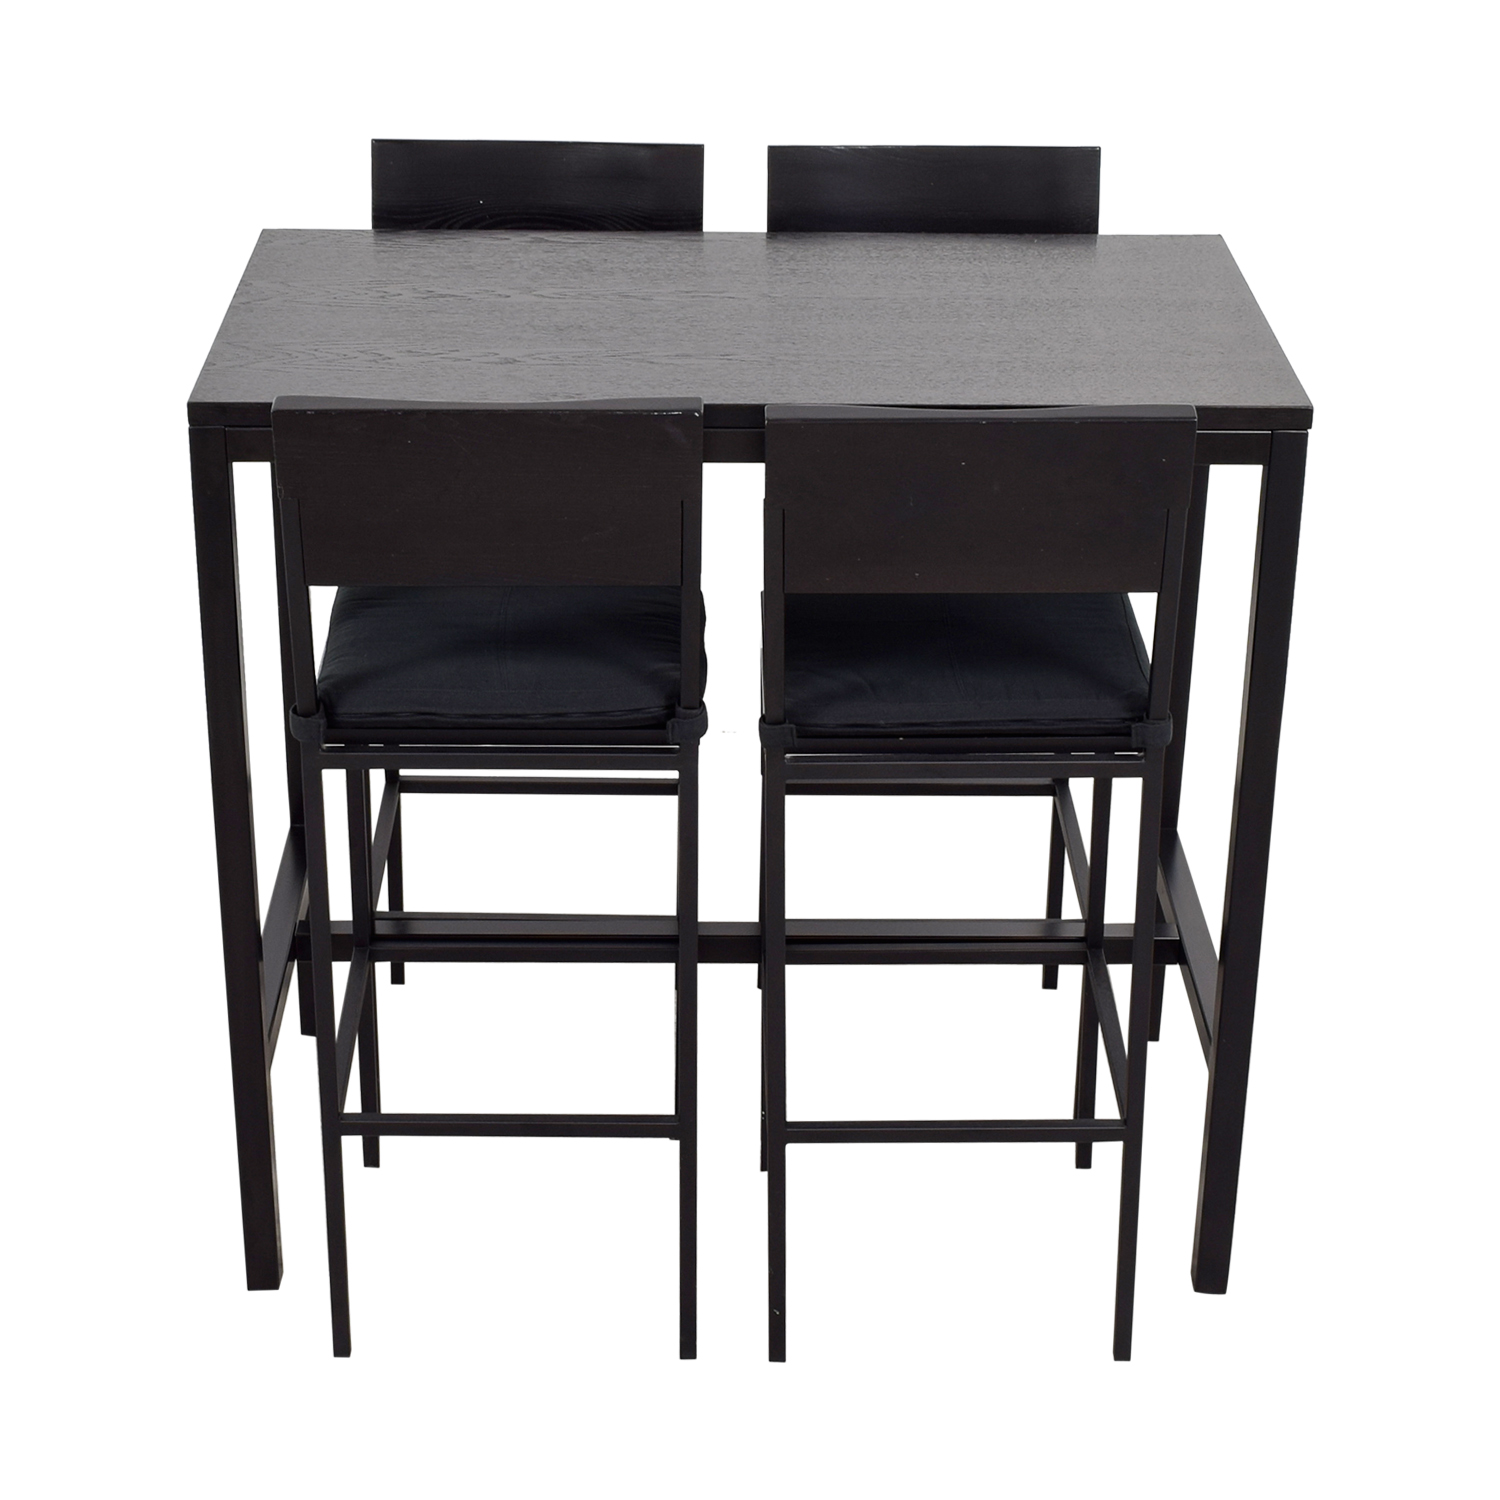 Crate & Barrel Crate & Barrel Black Tall Kitchen Dining Set coupon